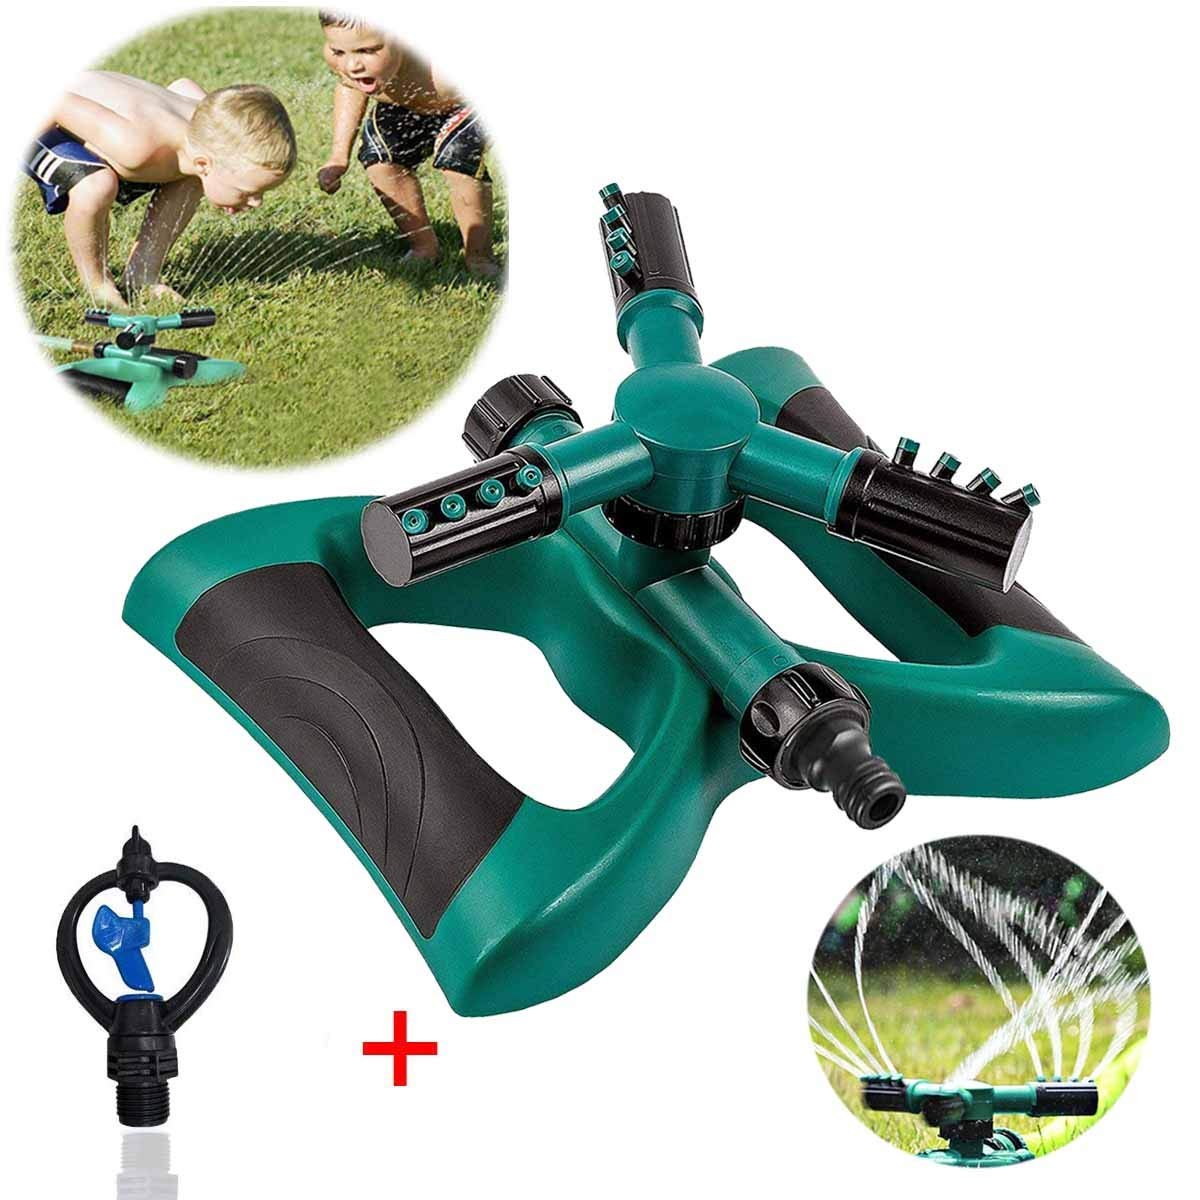 Lawn Sprinkler Automatic Sprinklers For Garden Water Sprinklers For Lawns 360 Rotating Adjustable Lawn Irrigation System Watering Sprinkler for Kids Covering Large Area Design Durable 3 Arm